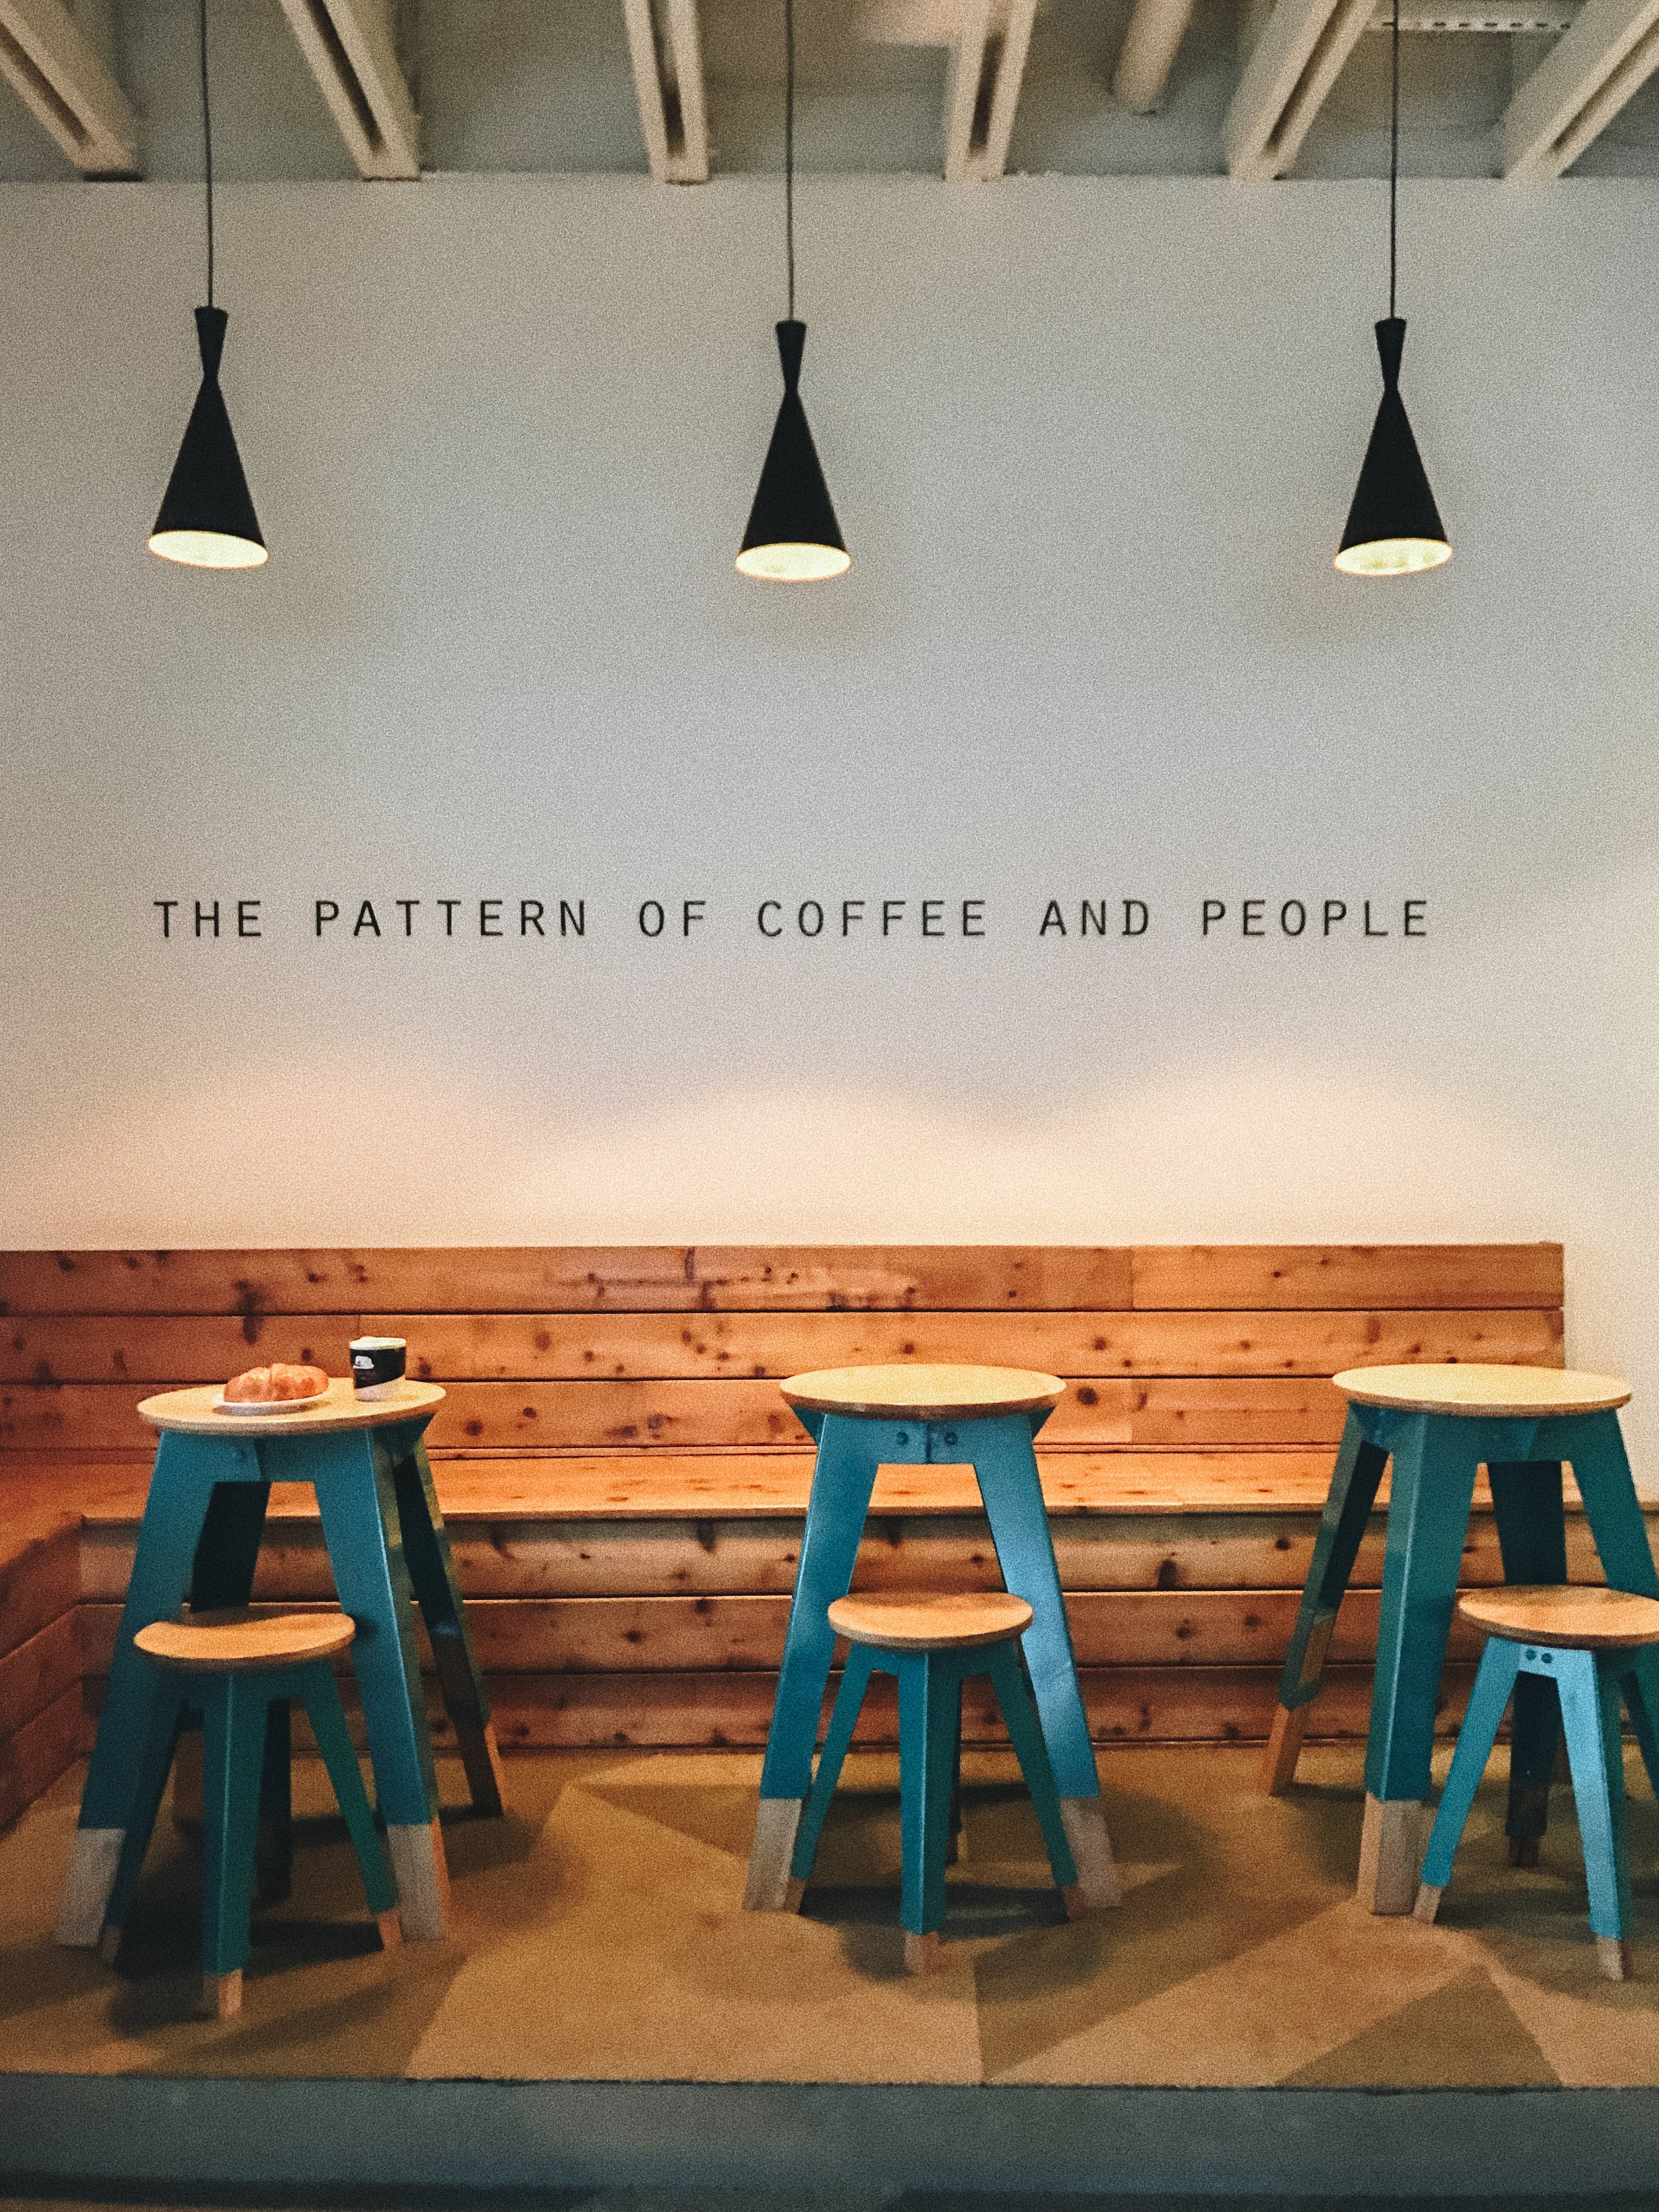 Best Coffee Shops in Dallas | Houndstooth Coffee